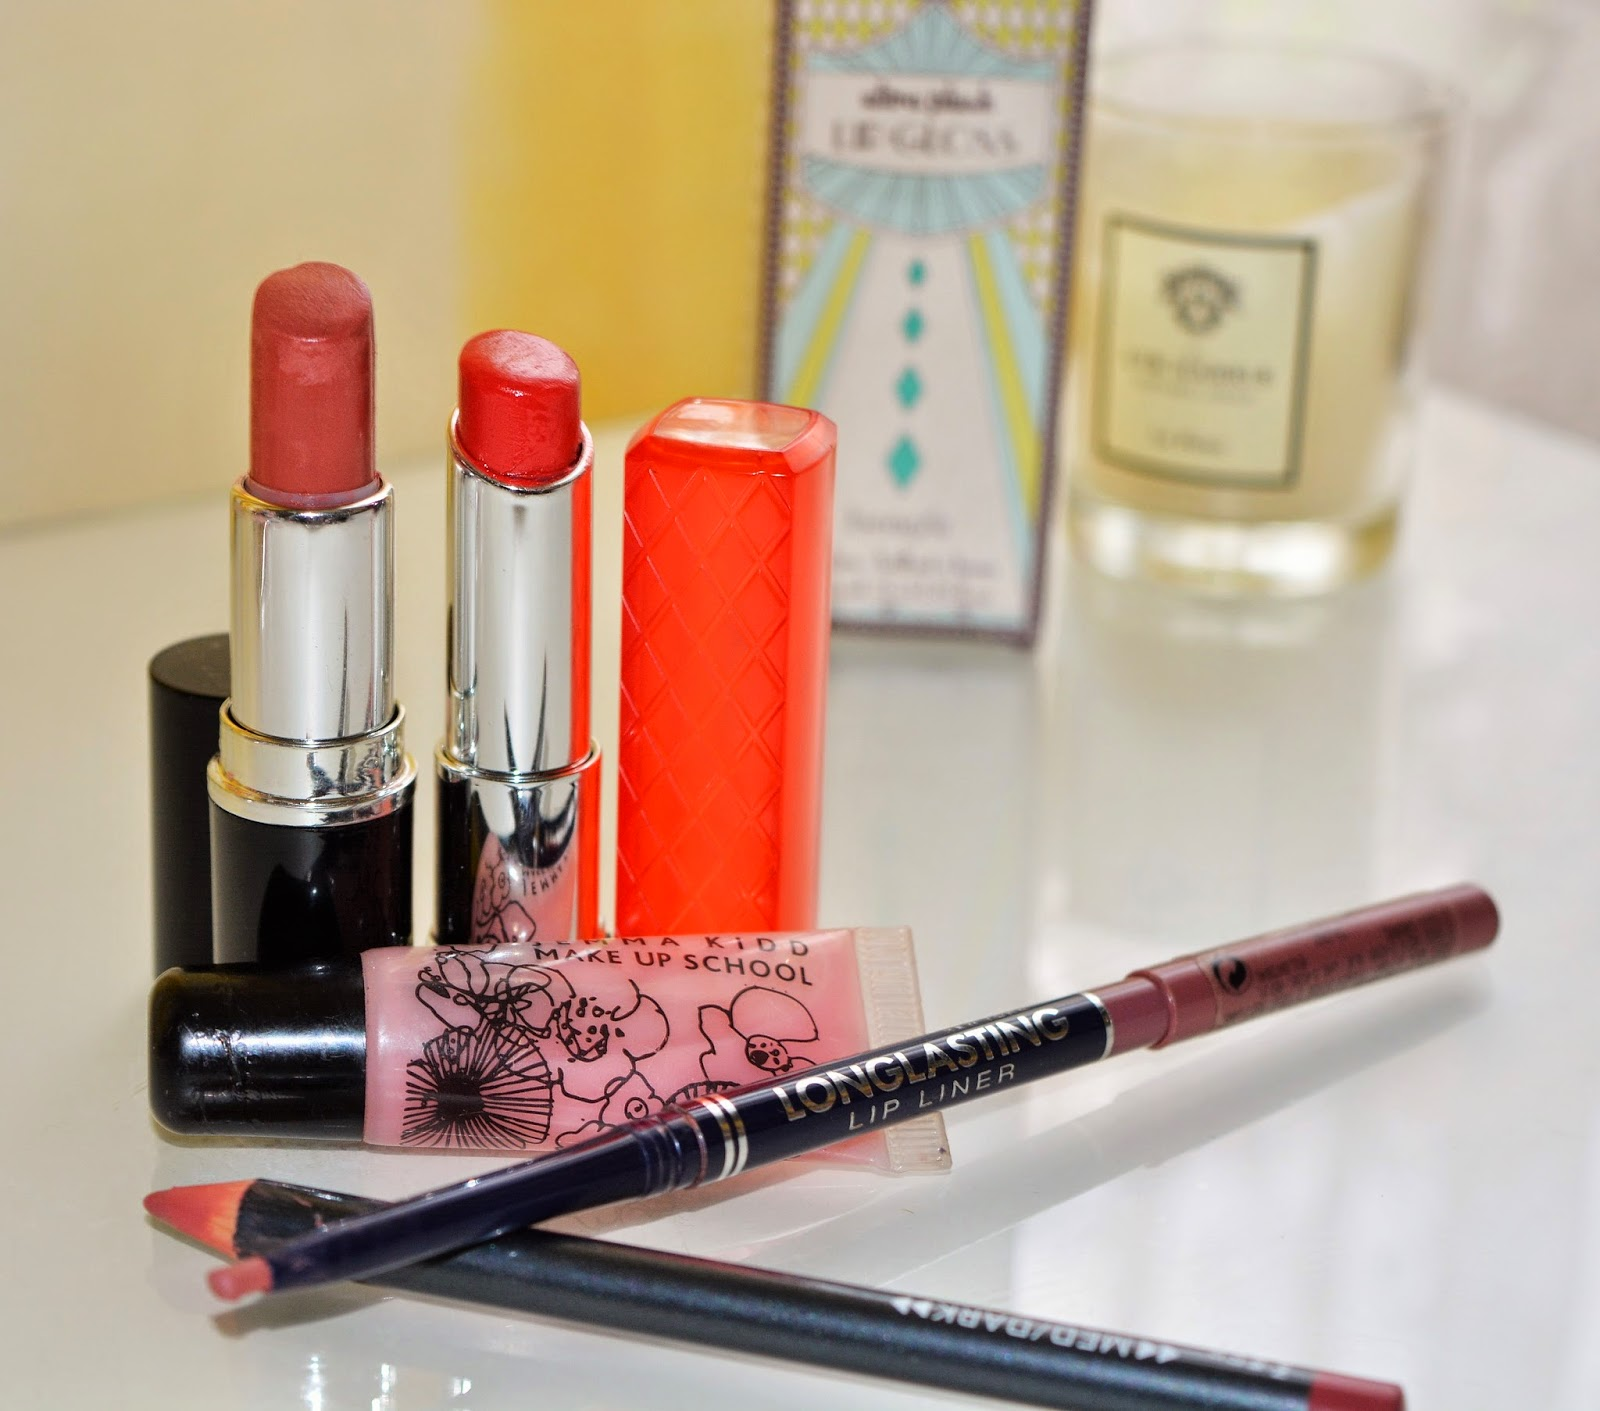 Lip products included in the Project use up- Thoughts of a bumble mind.